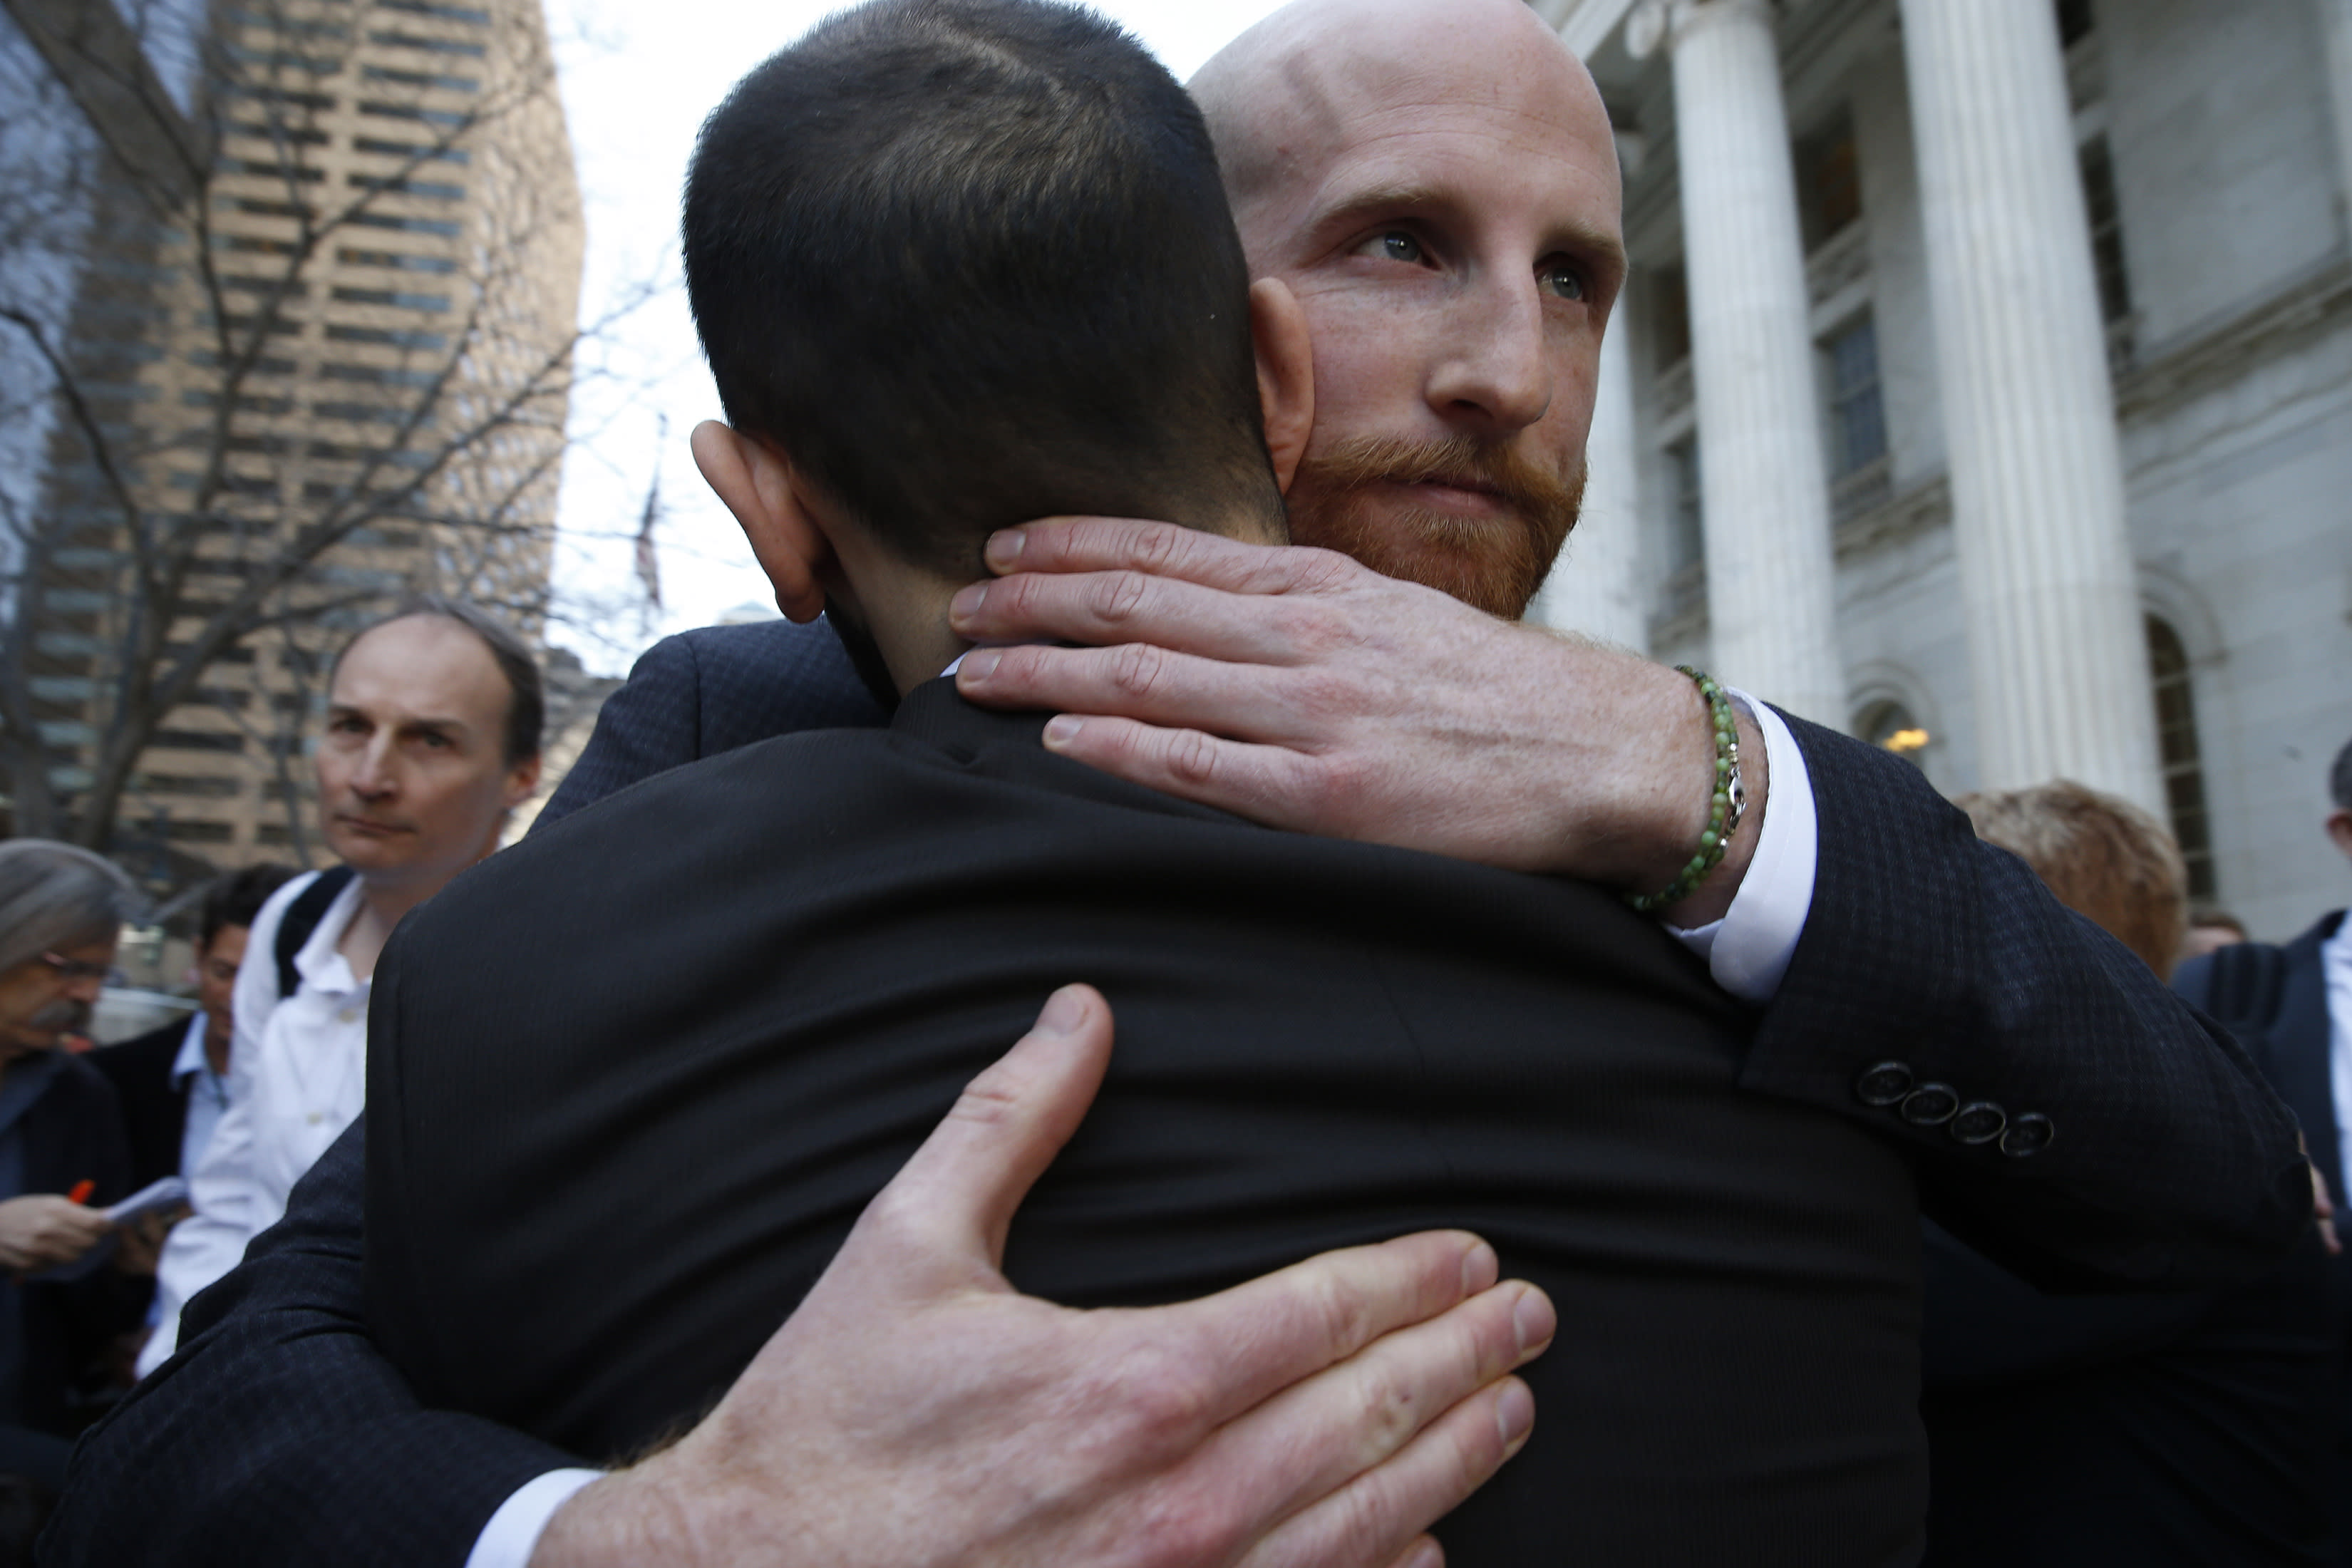 Gay marriage declared legal across the us in historic supreme court ruling